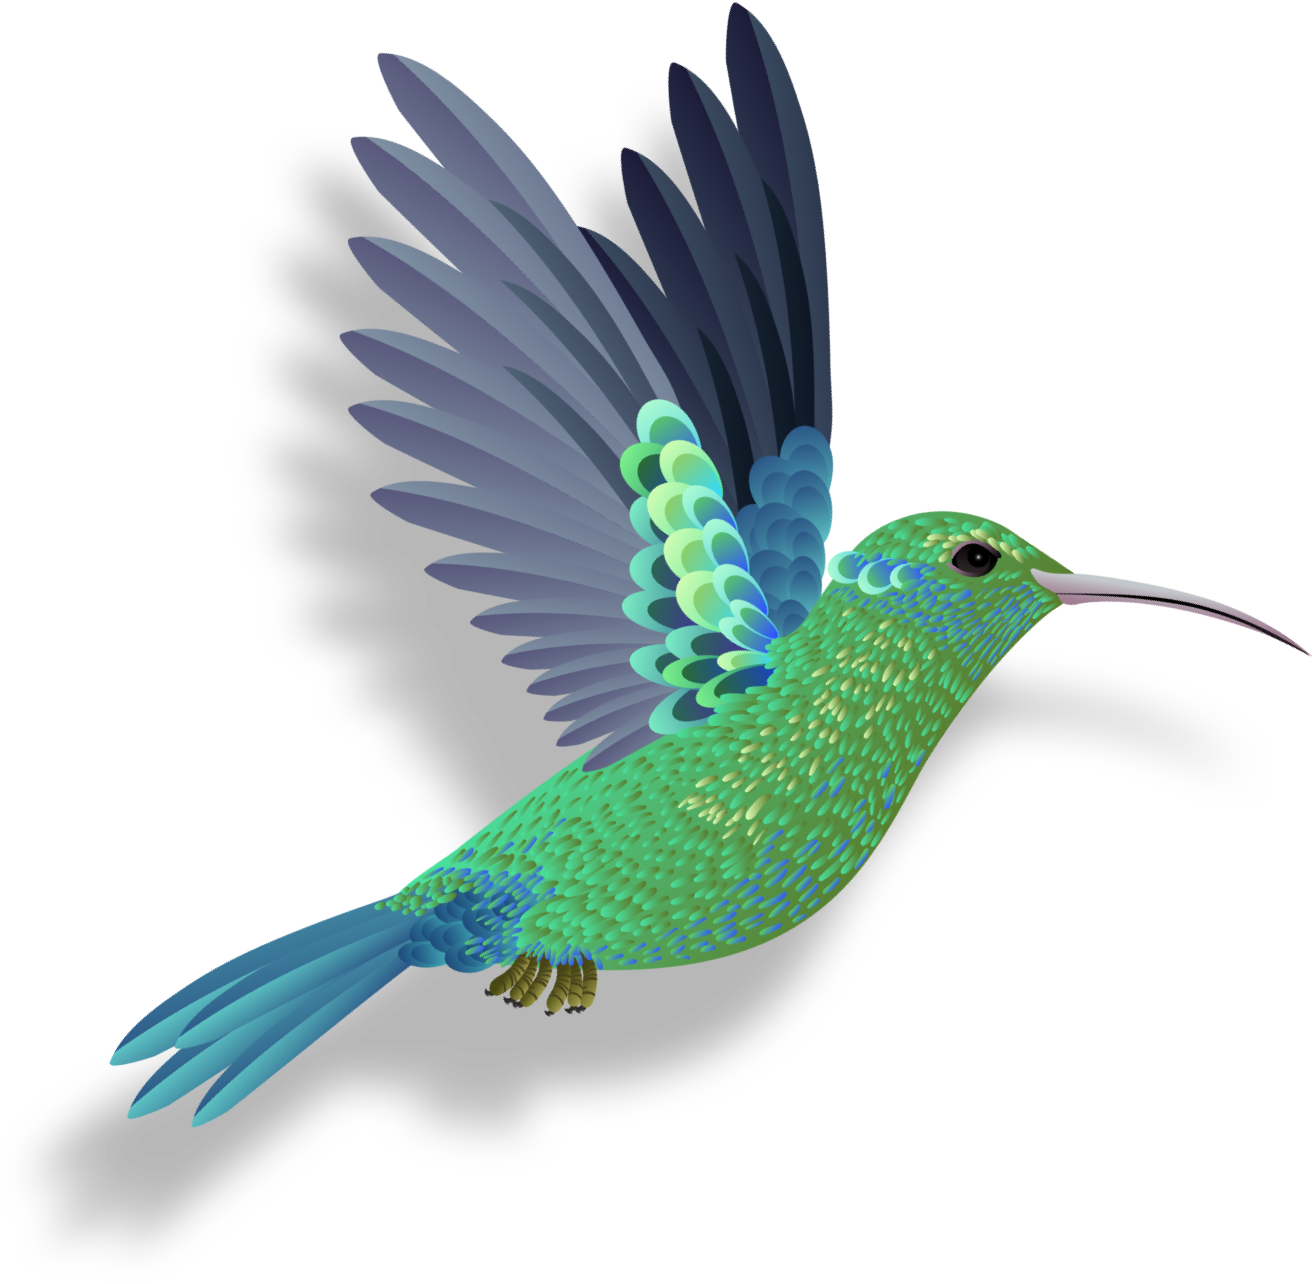 A  flying blue and green hummingbird